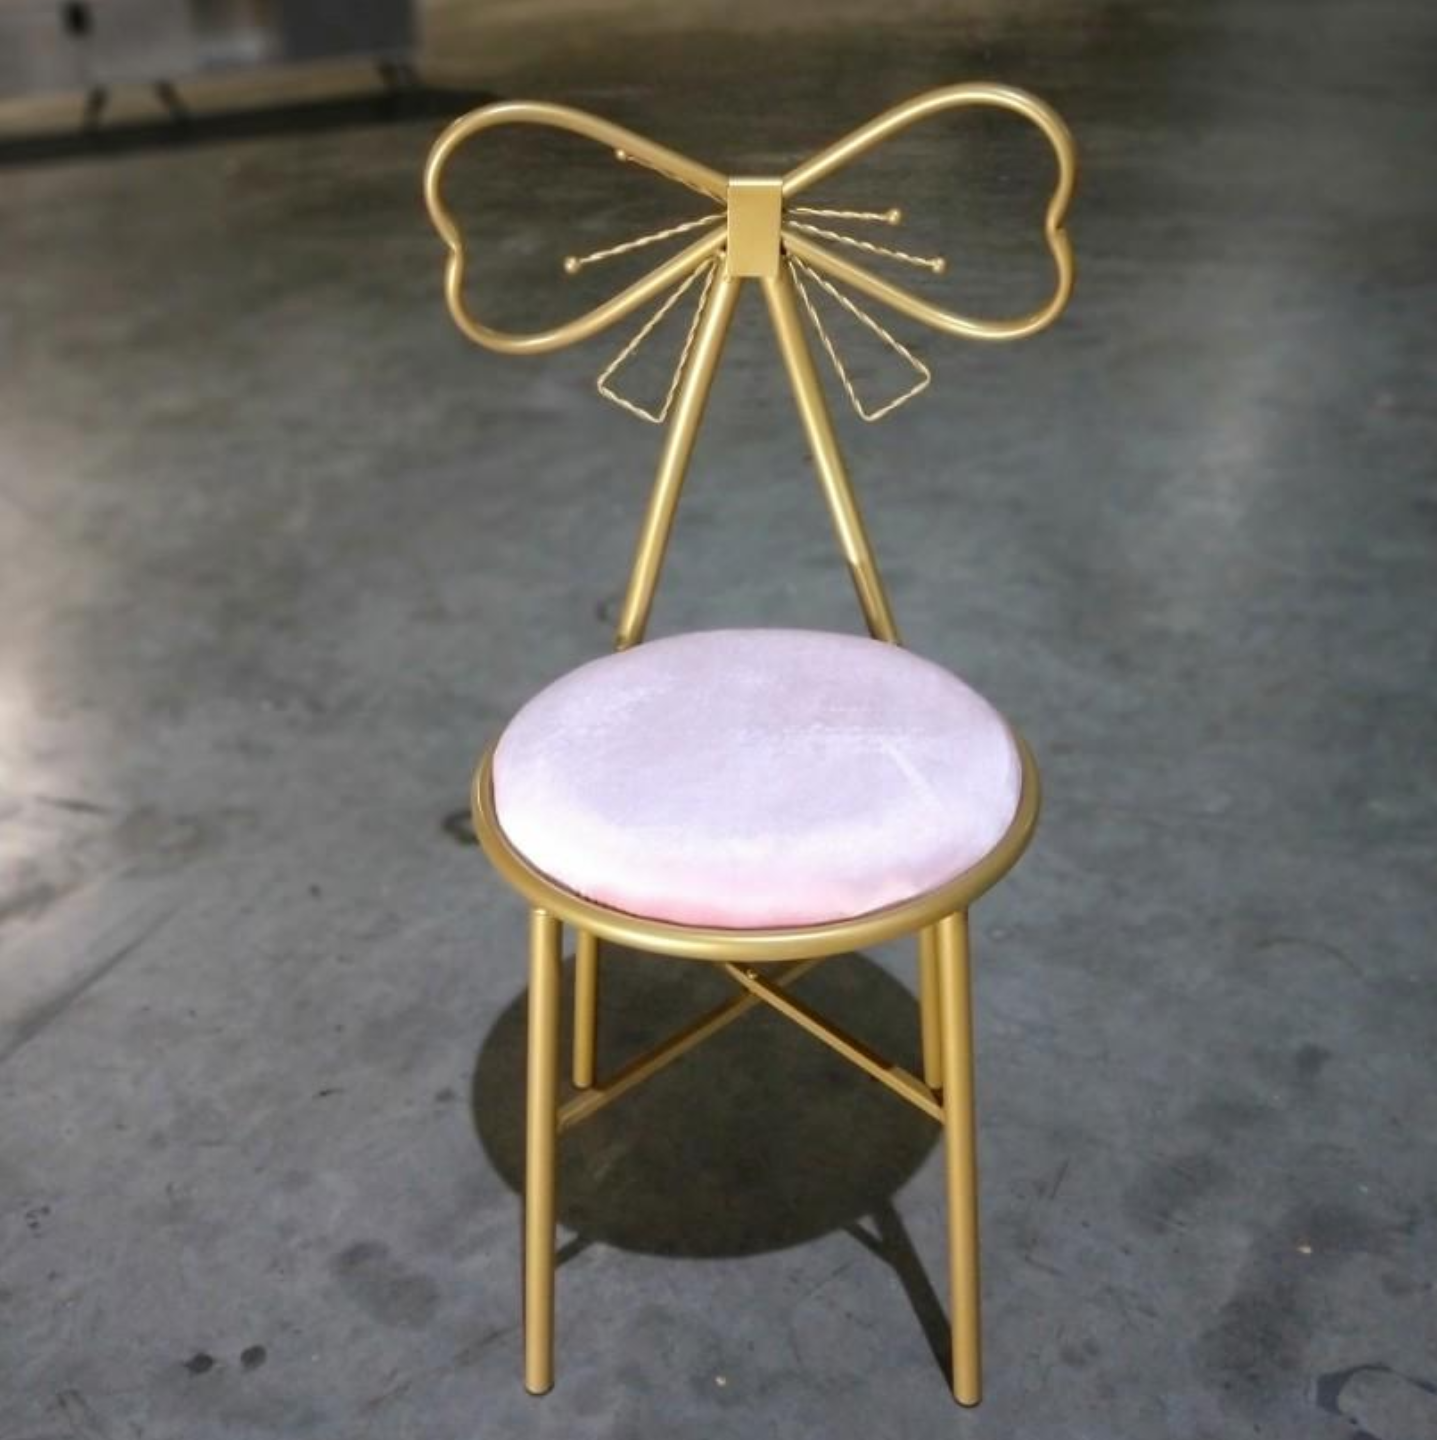 FLYZ Designer Chair in GOLD Frame